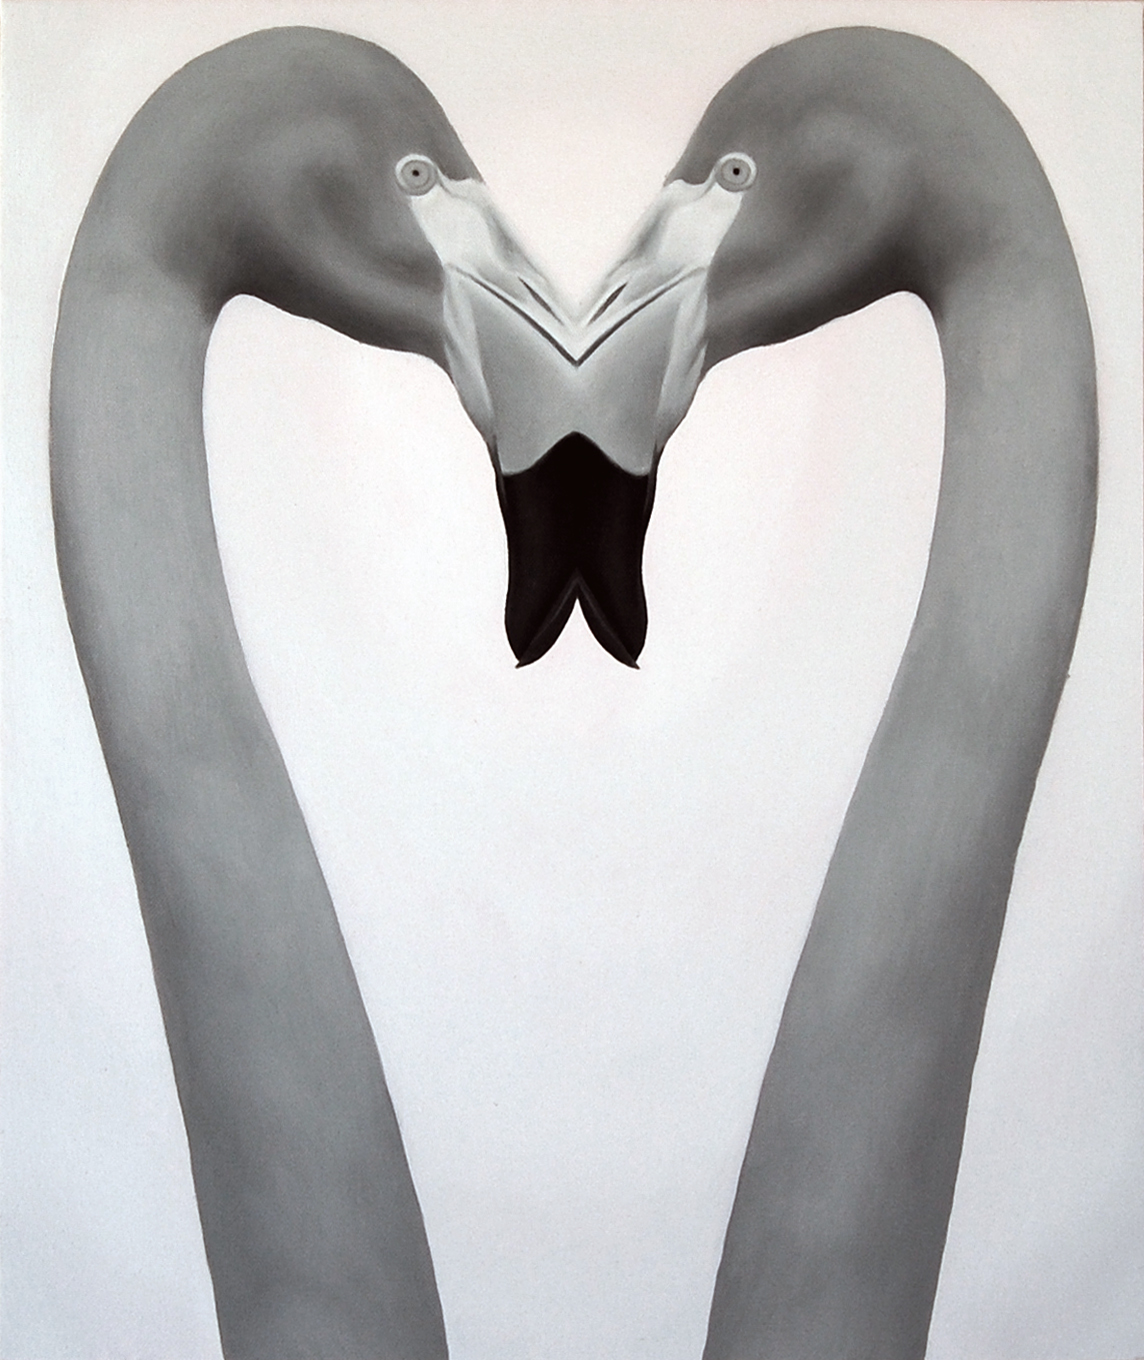 2009 kissing(flamingo) 380×455㎜